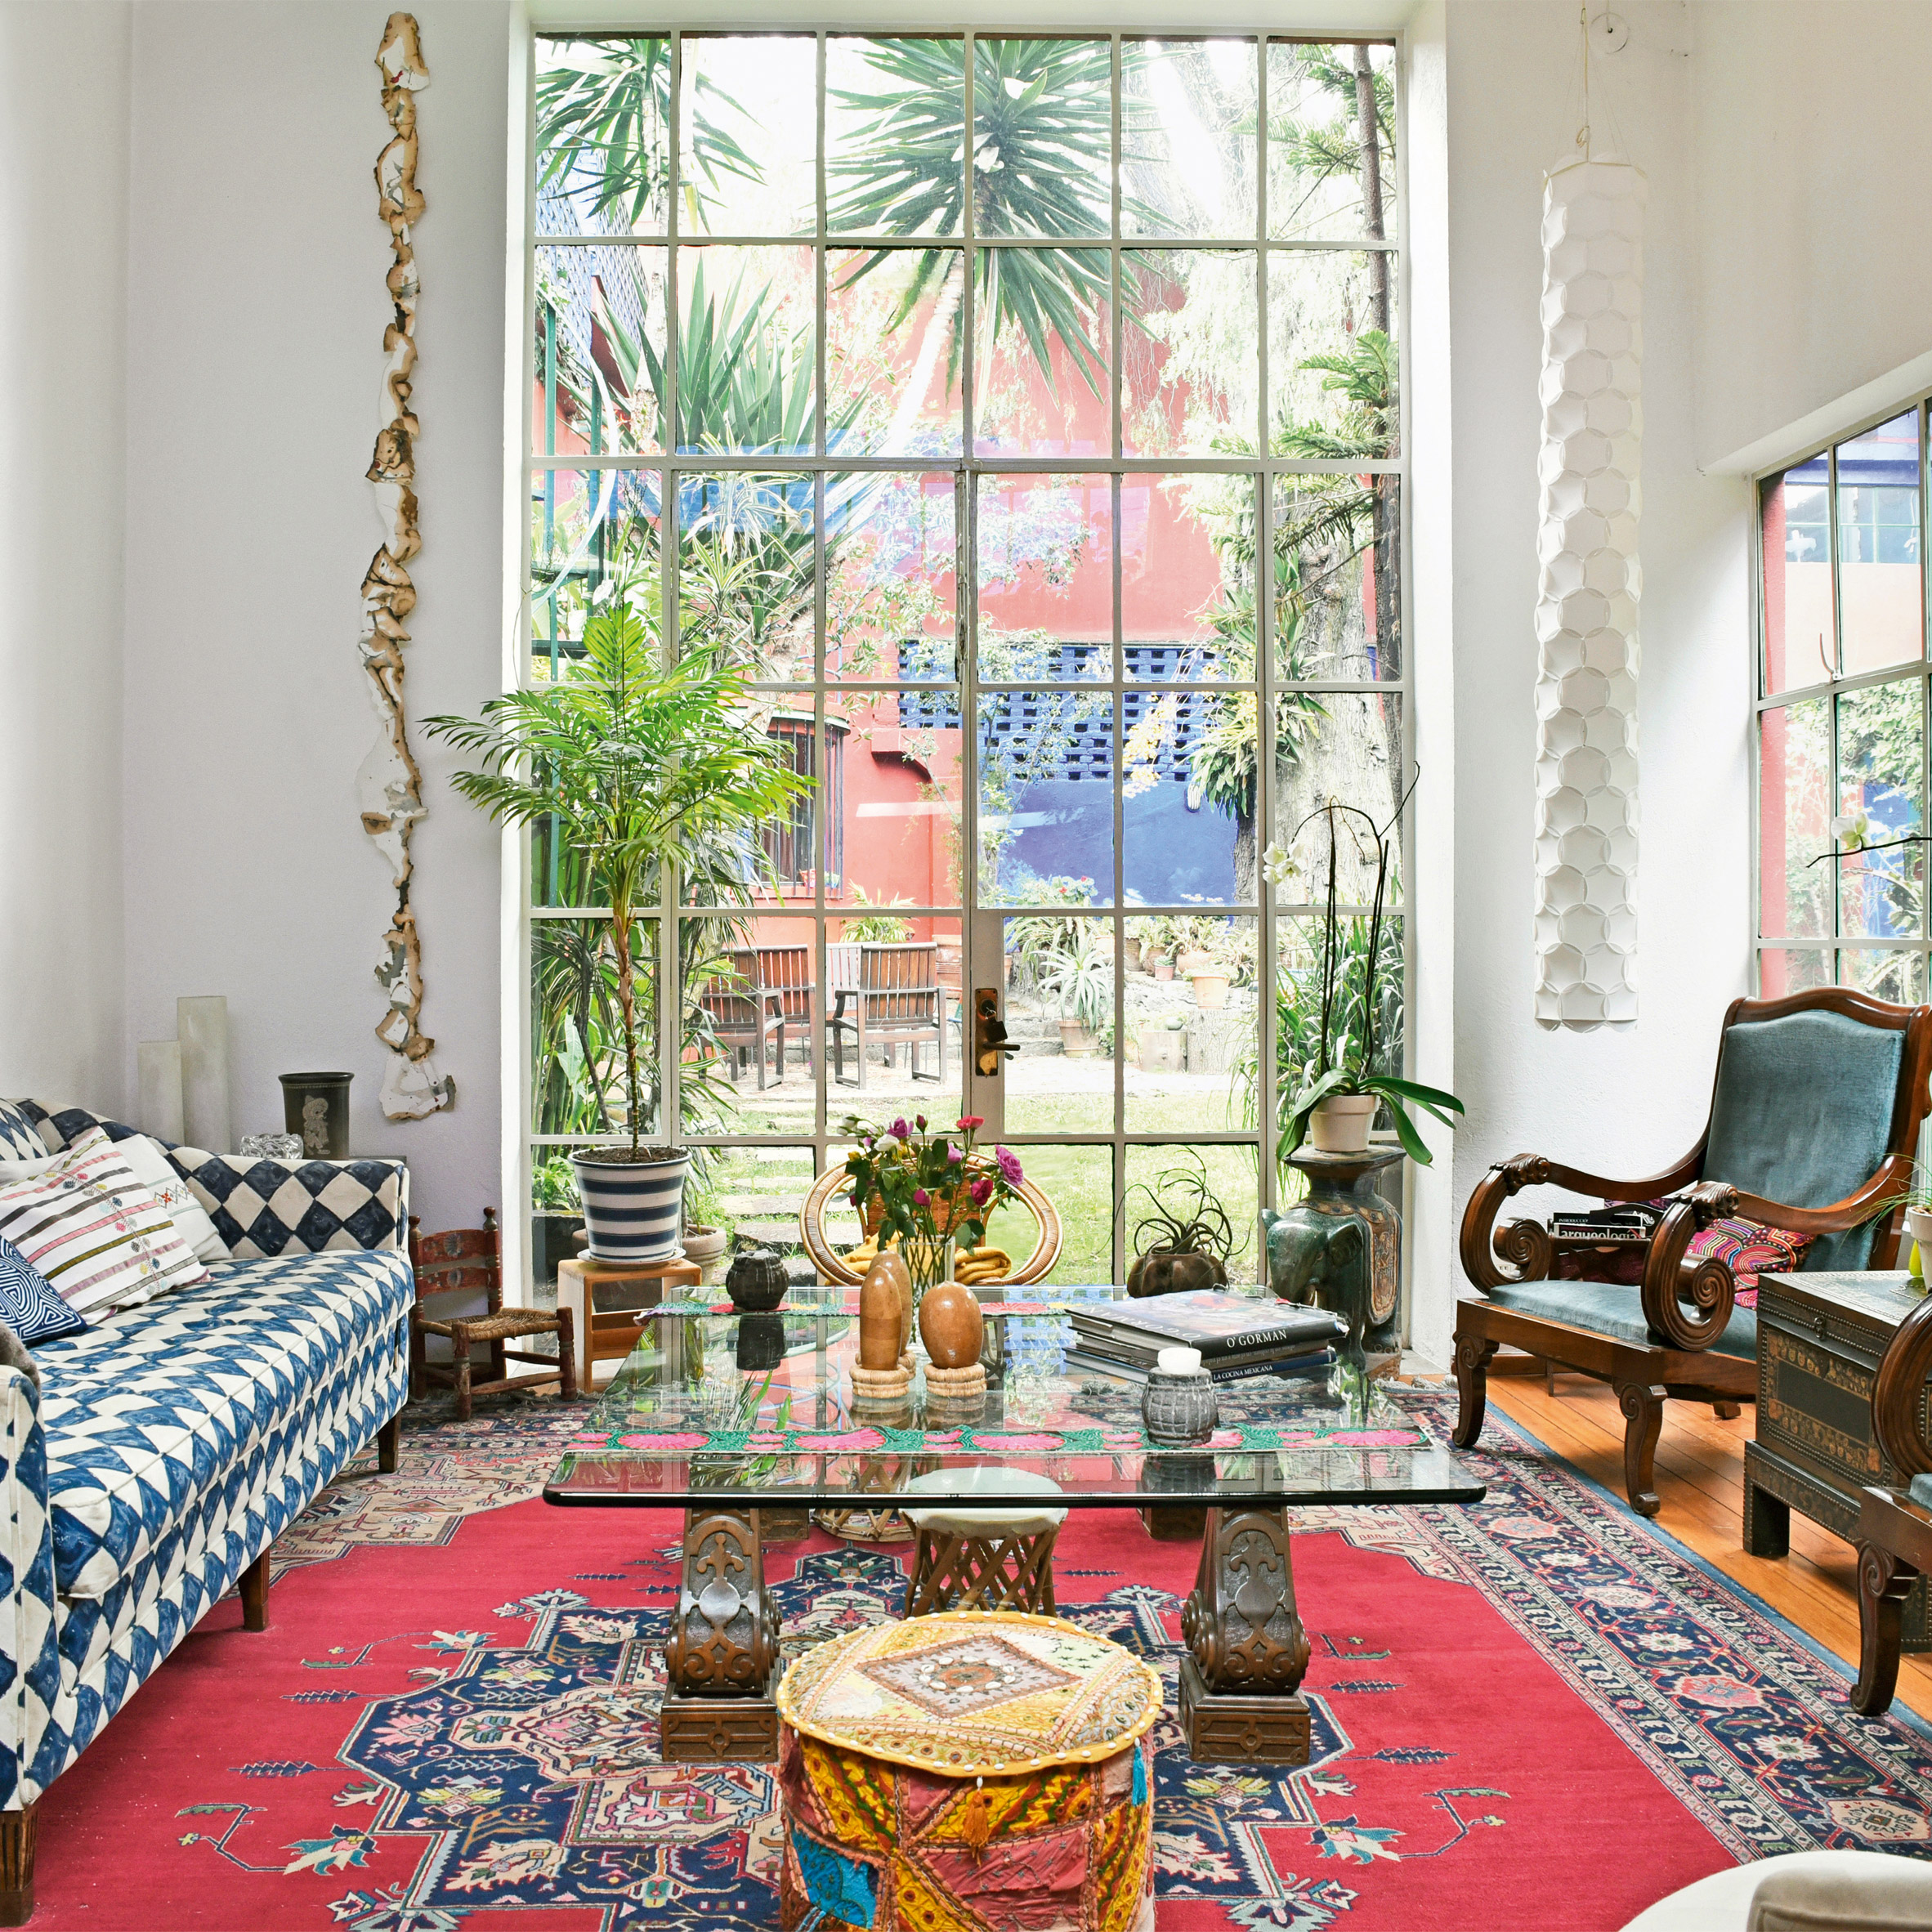 A living room with a floor-to-ceiling window